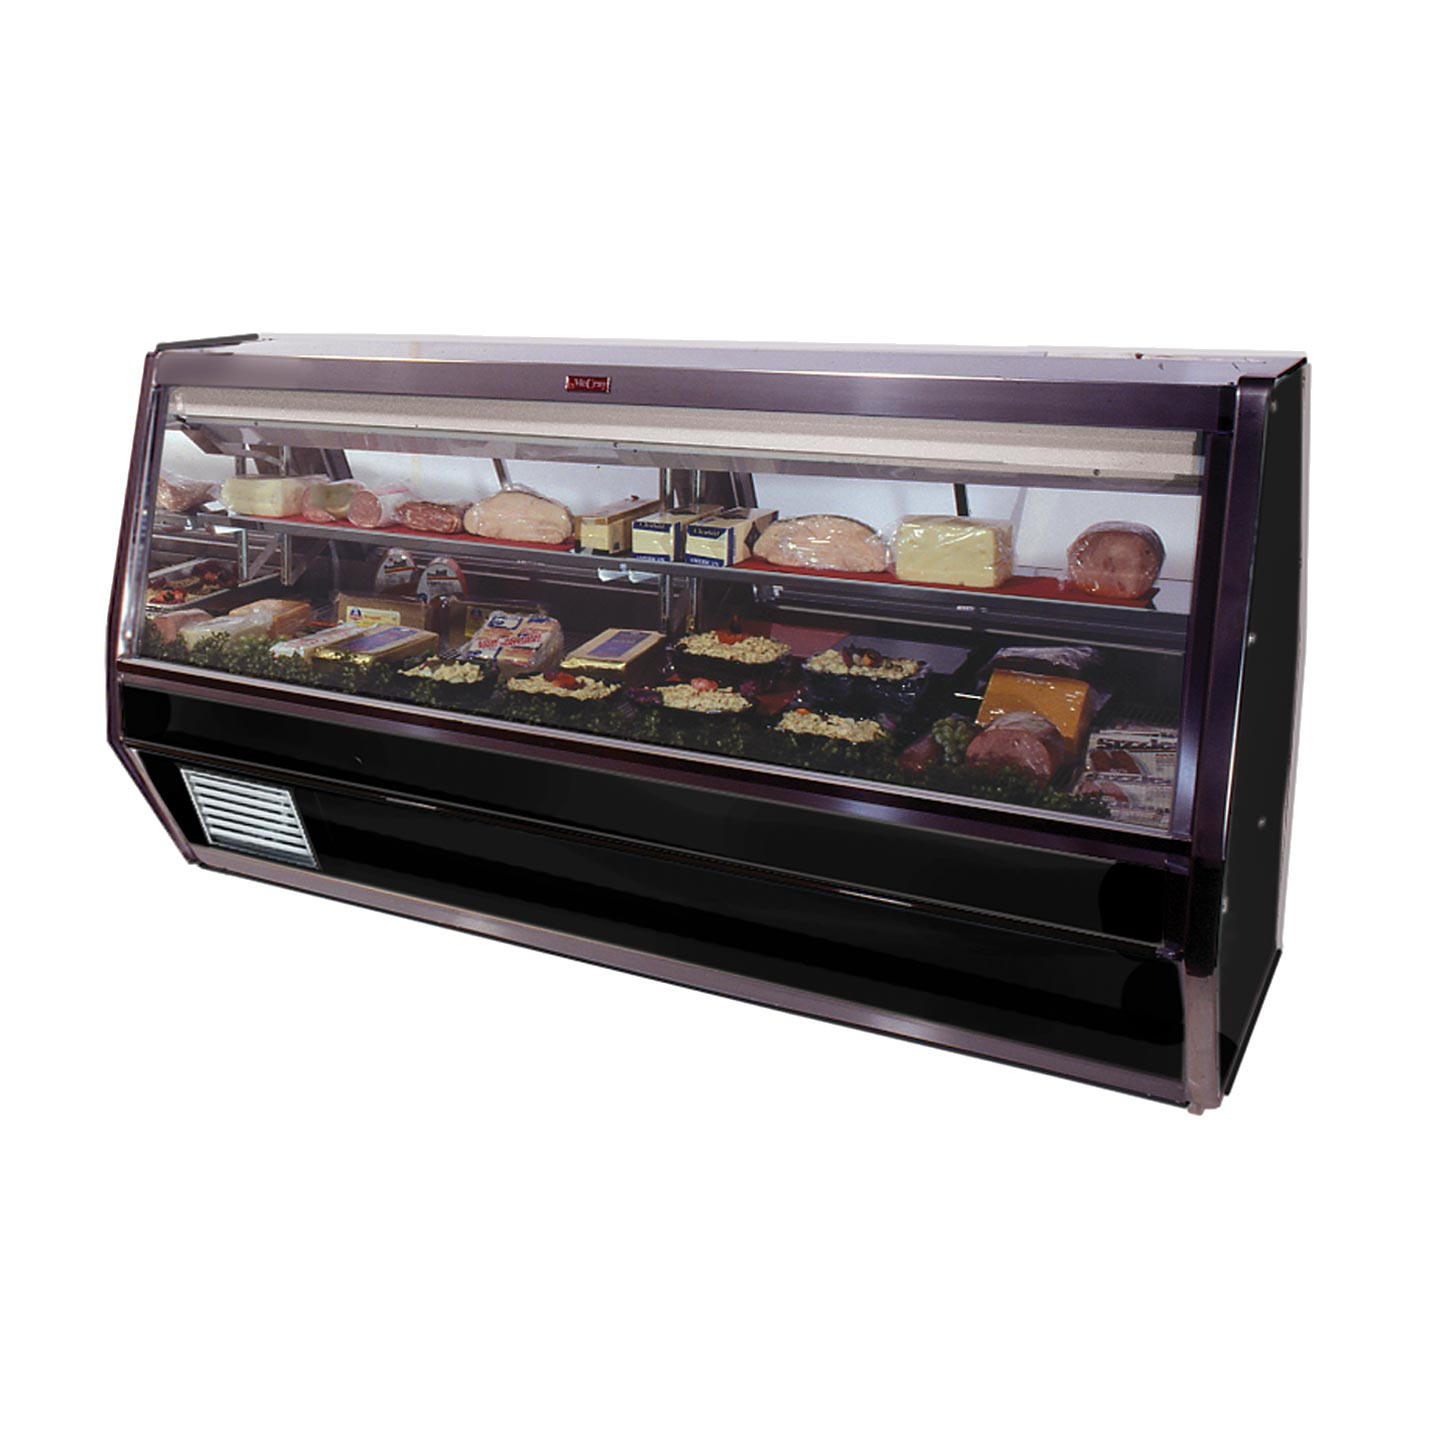 Howard-McCray R-CDS40E-10-BE-LED display case, refrigerated deli